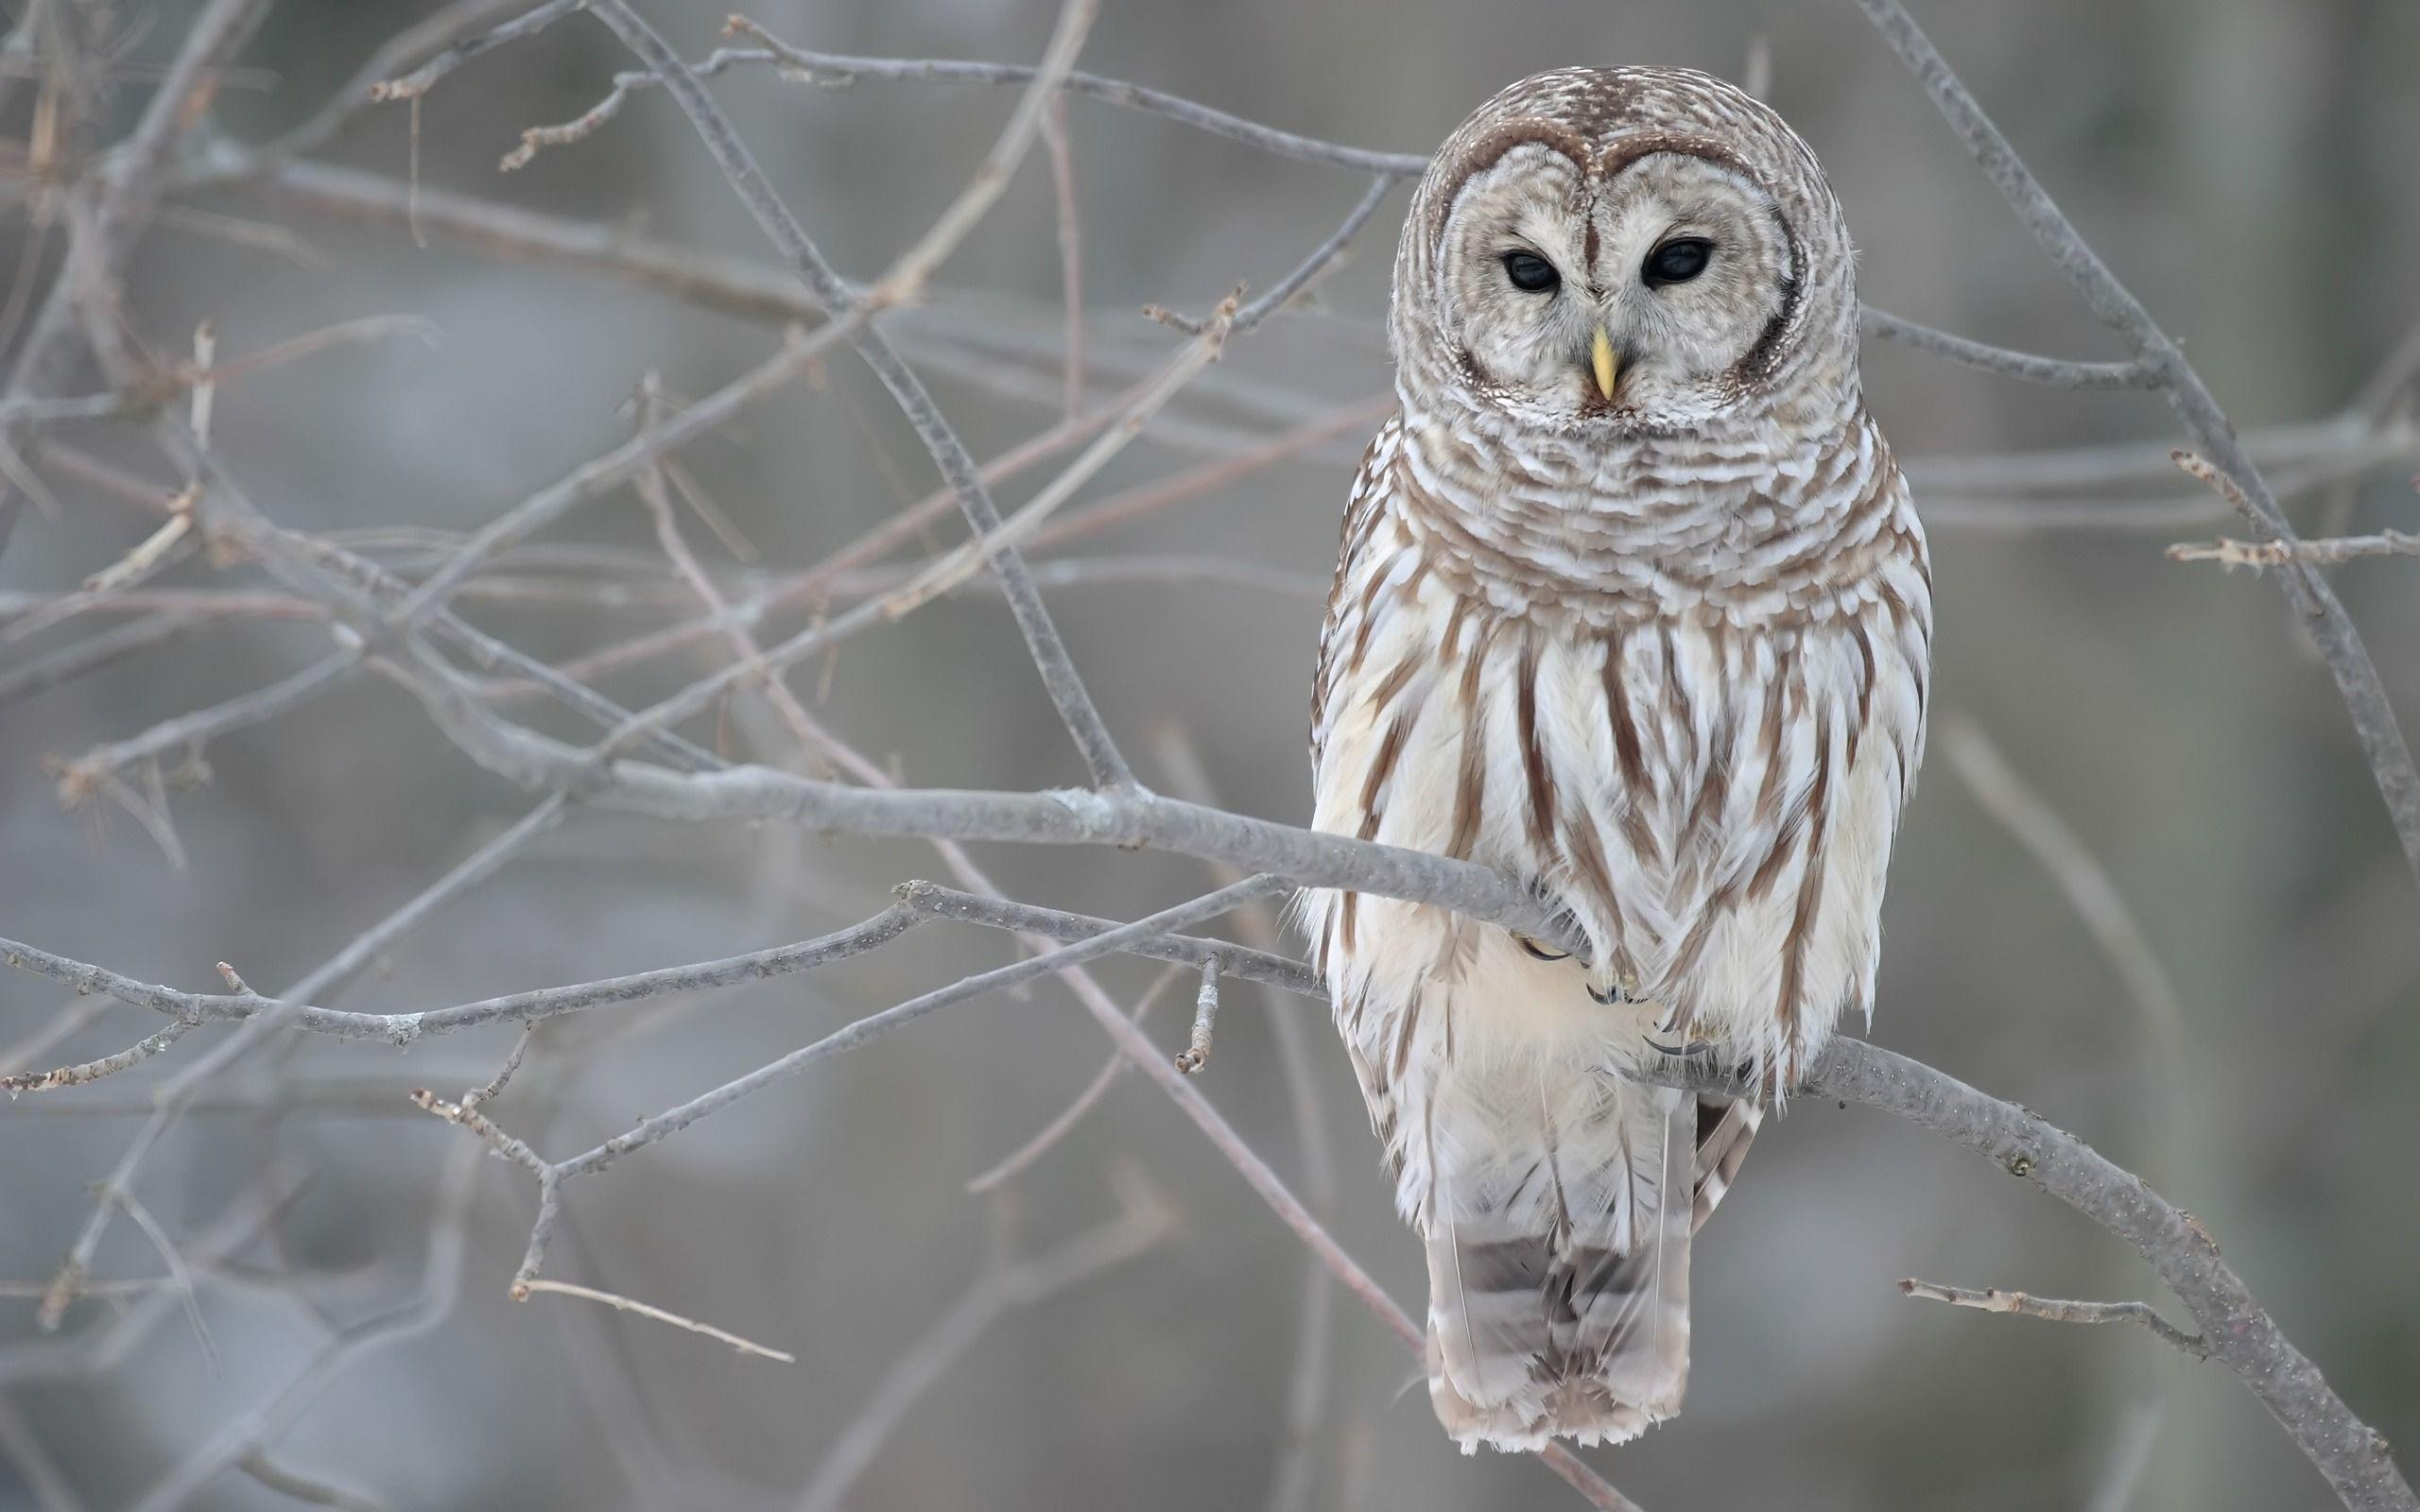 Snowy owl wallpaper birds animals wallpapers for free download ...